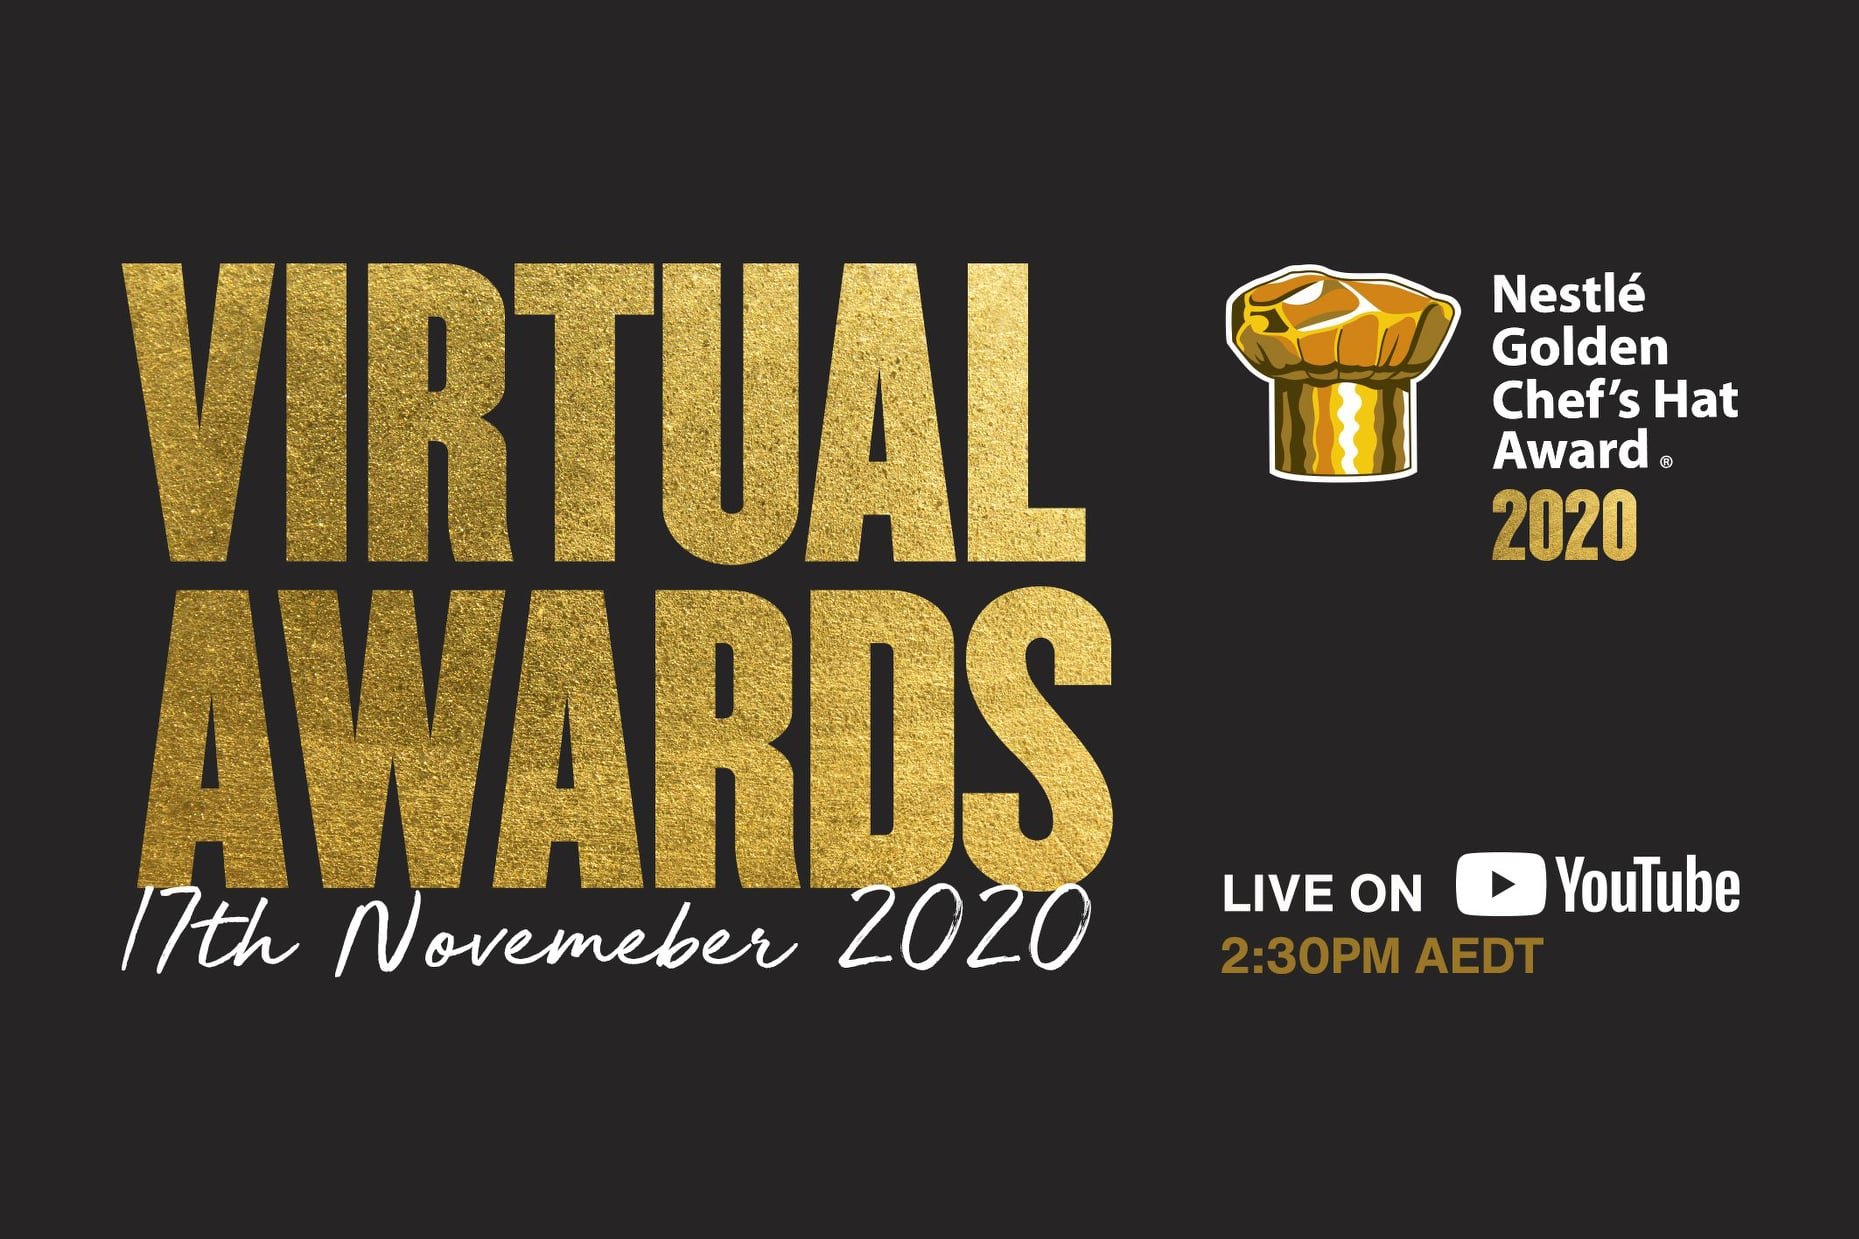 Join Us For The Virtual Nestlé Golden Chef's Hat 2020 Awards!